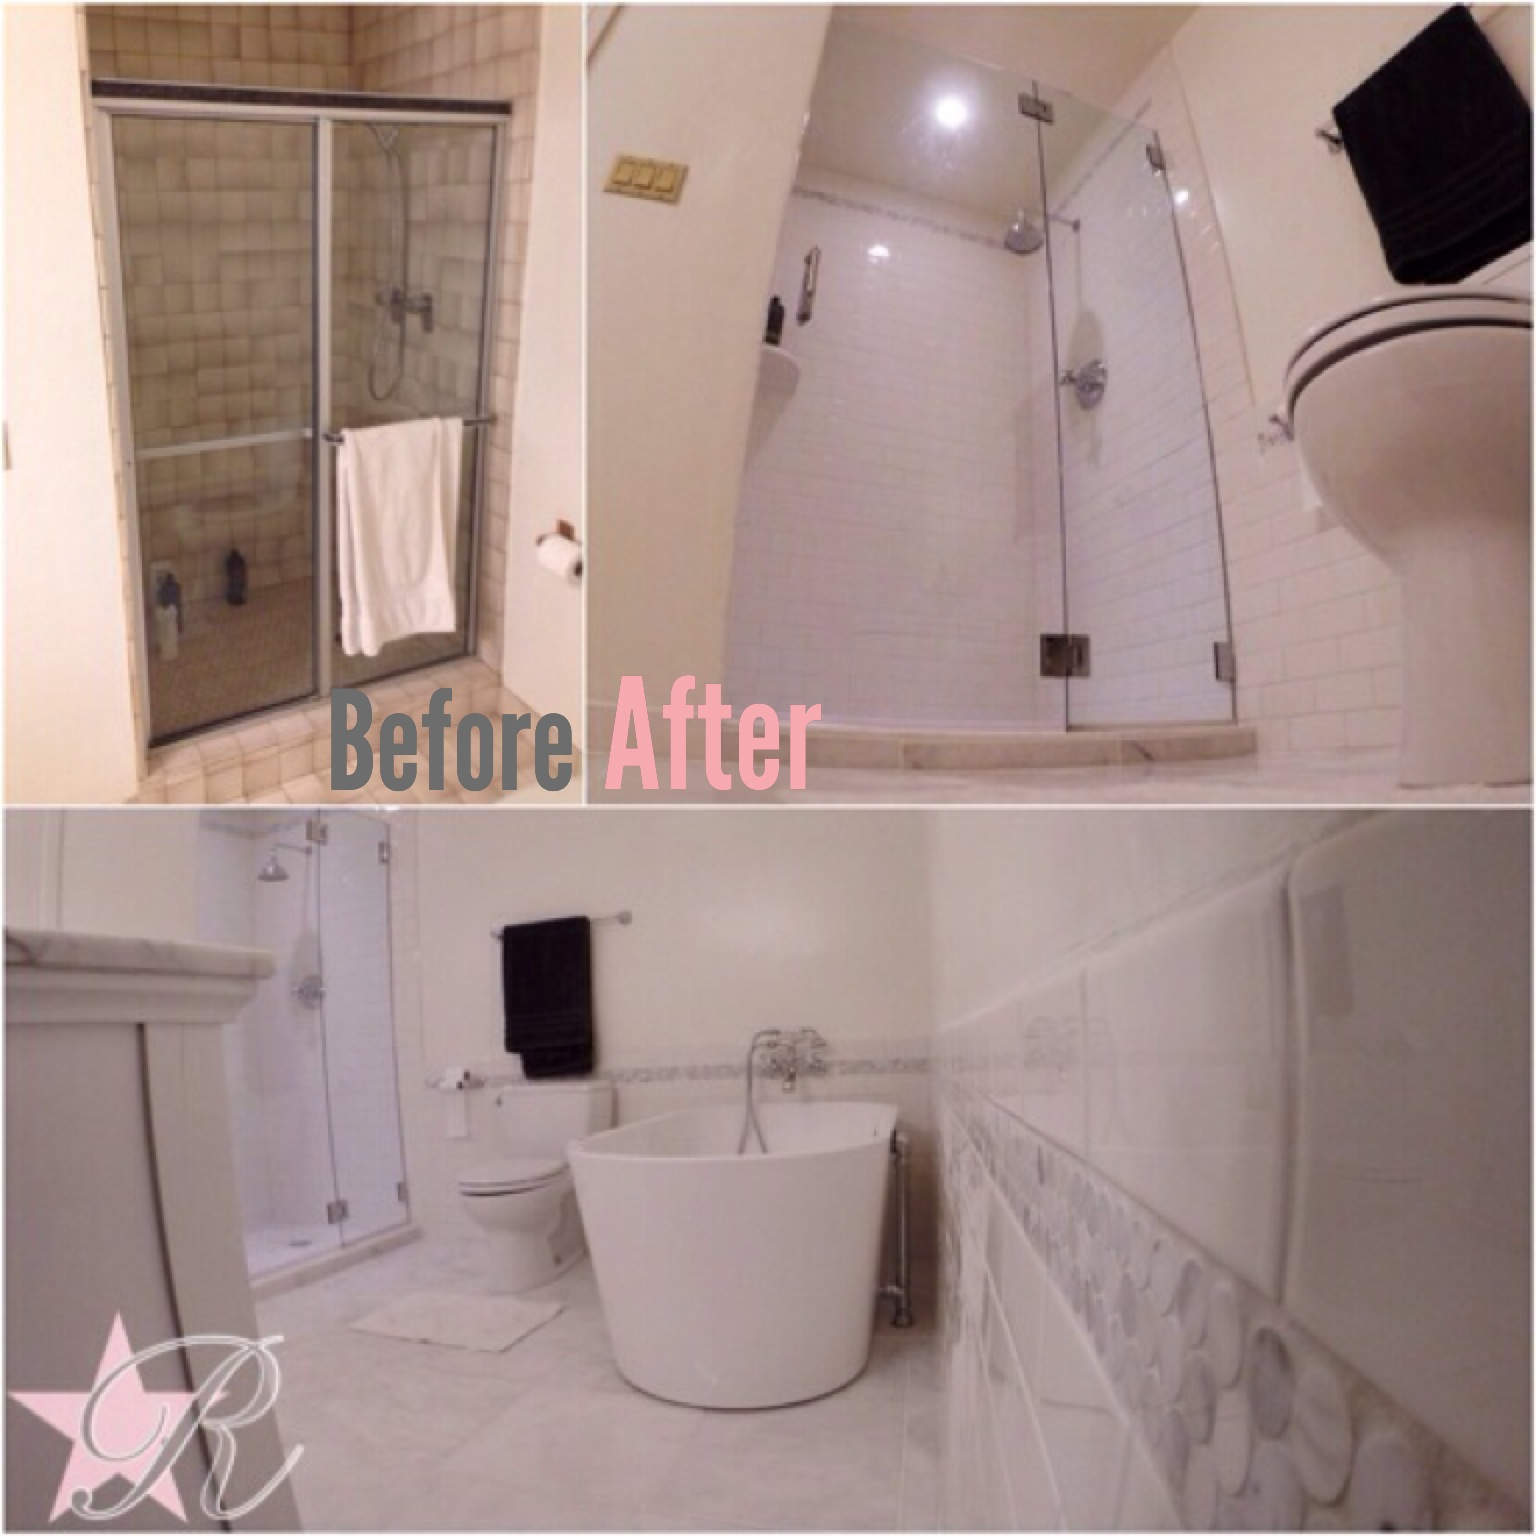 Rockstar Remodel demo'd the existing bathroom and installed a new marble shower, floor and wainscoting. Please check out  videos  for more information on this bathroom.